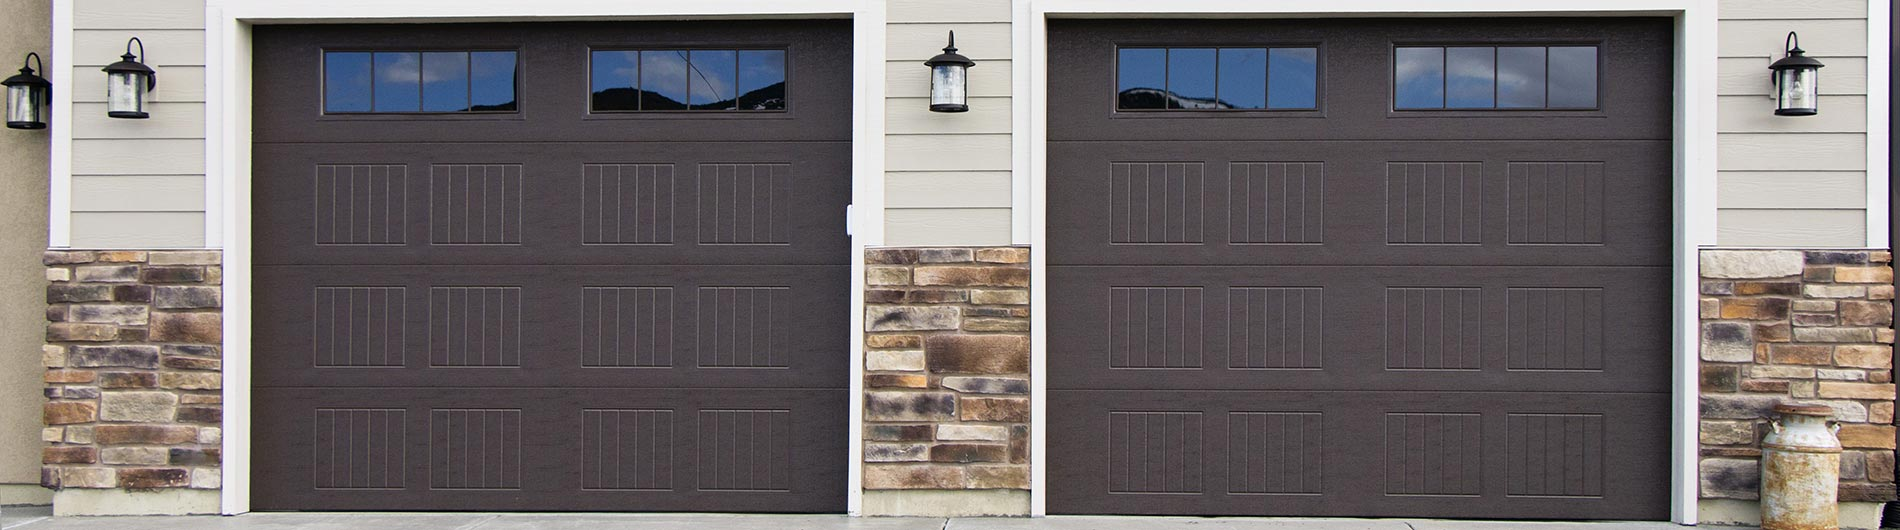 model-9100-Steel-Garage-Door-Sonoma-Brown-Stockbridge